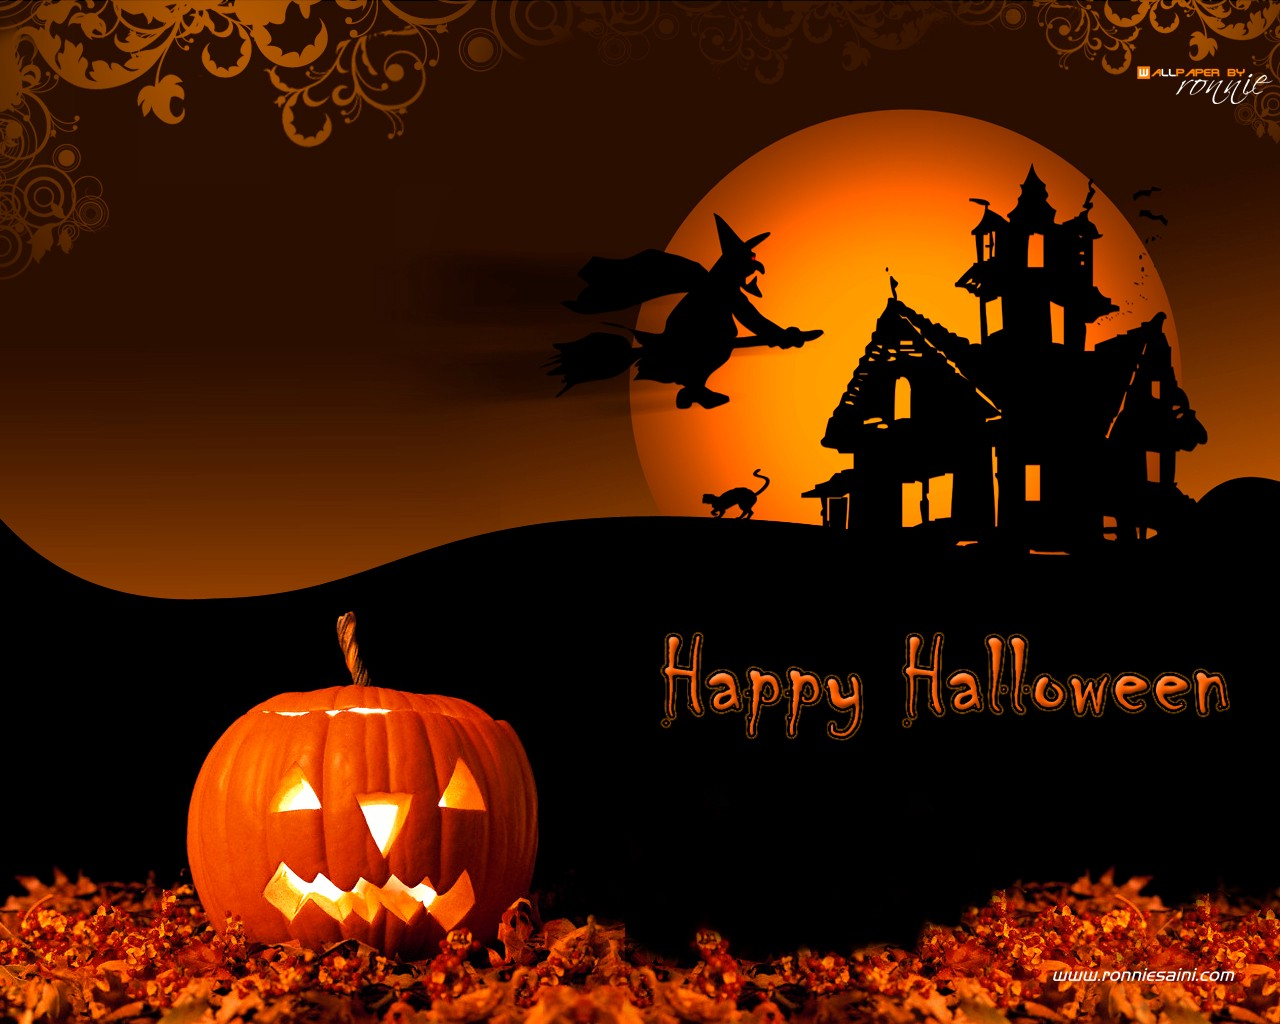 Happy Halloween Images Pictures 2016 Free Download For Facebook